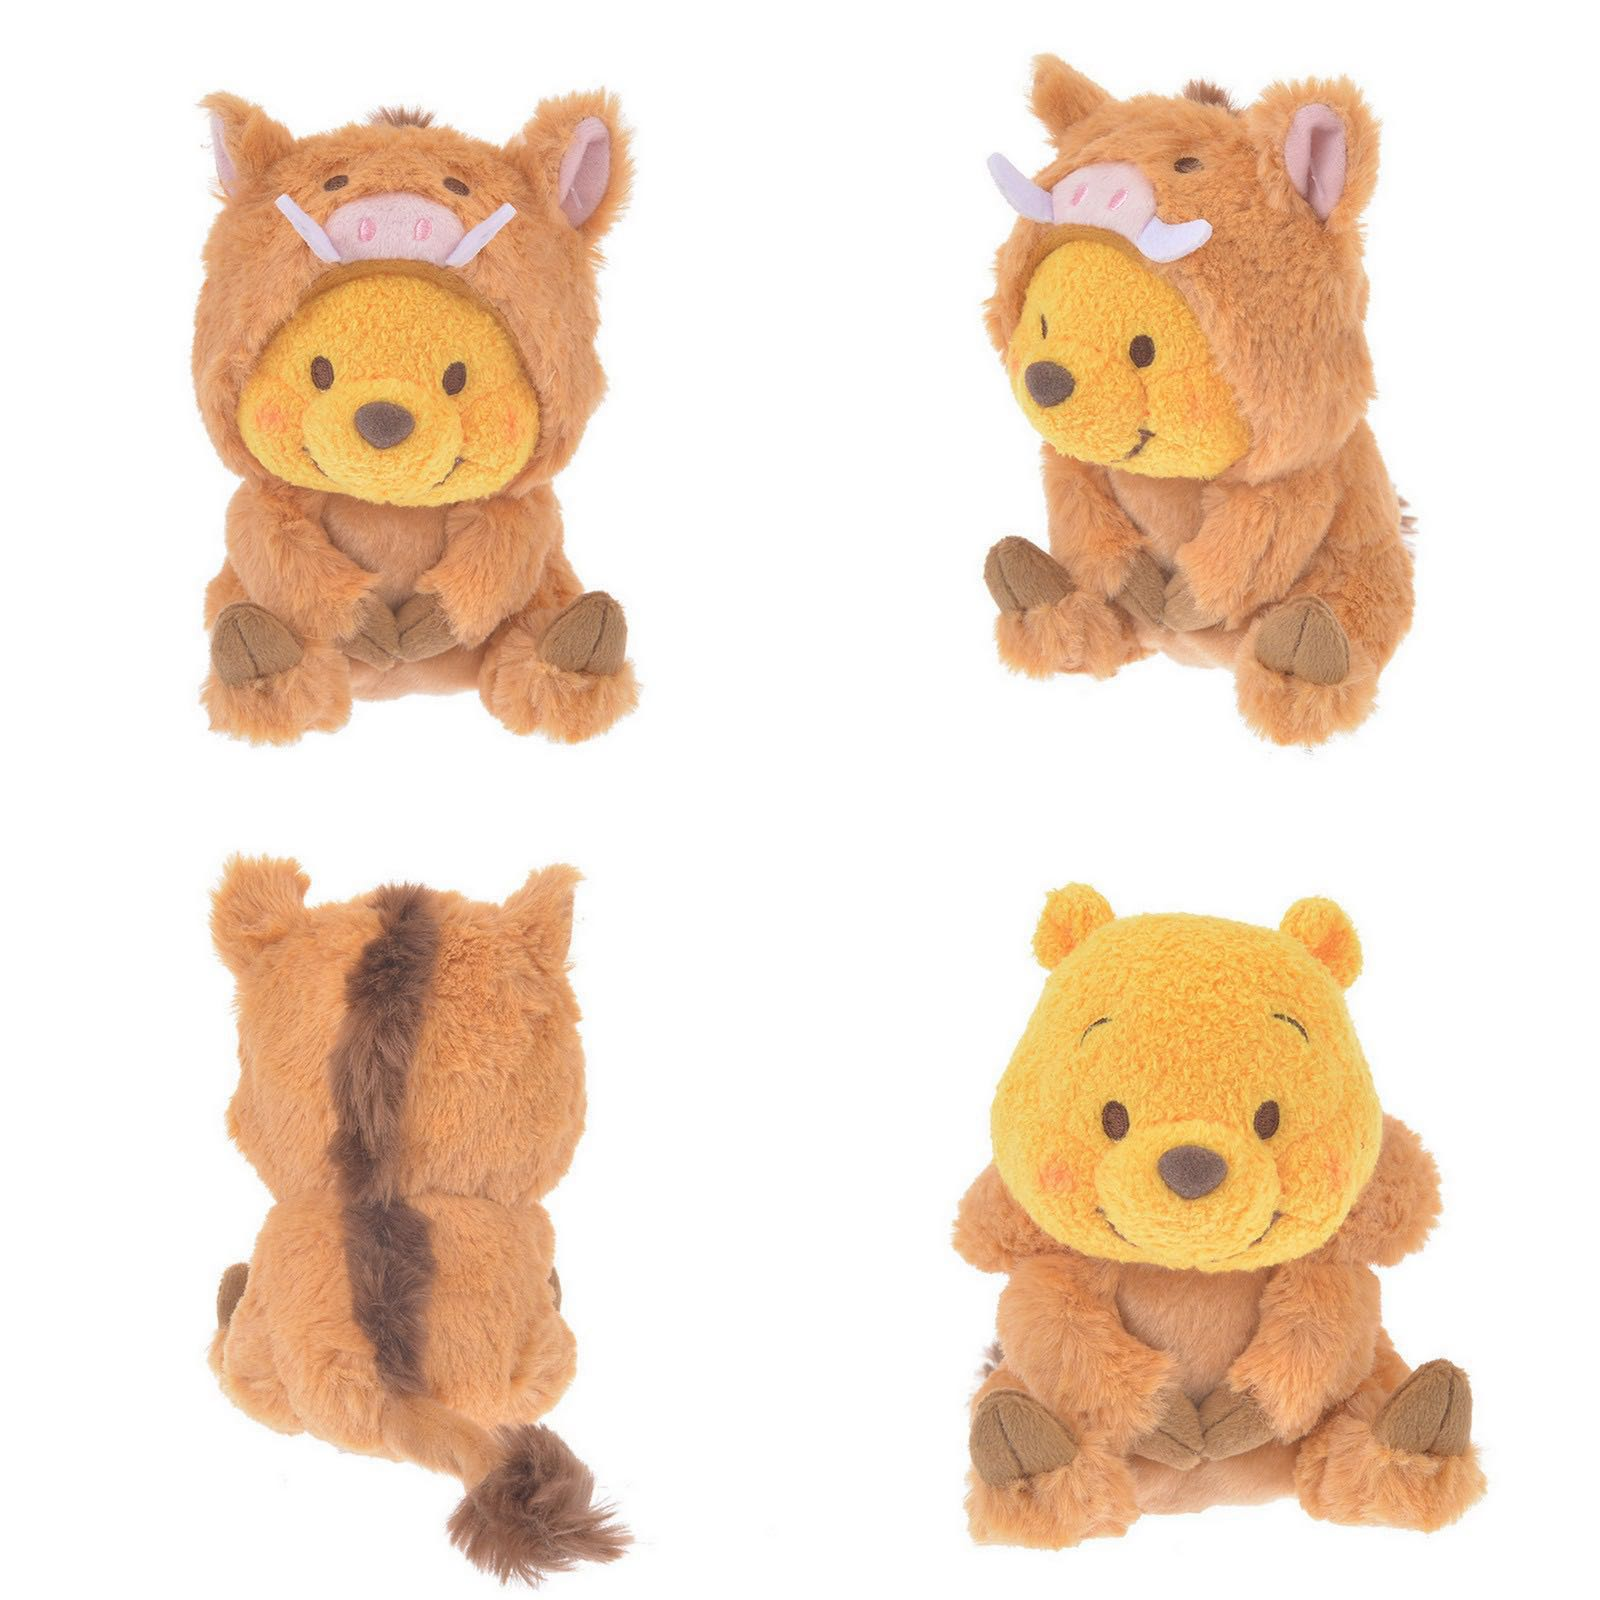 29493f95ee51 Disney store Japan Winnie the Pooh year of pig boar limited edition ...